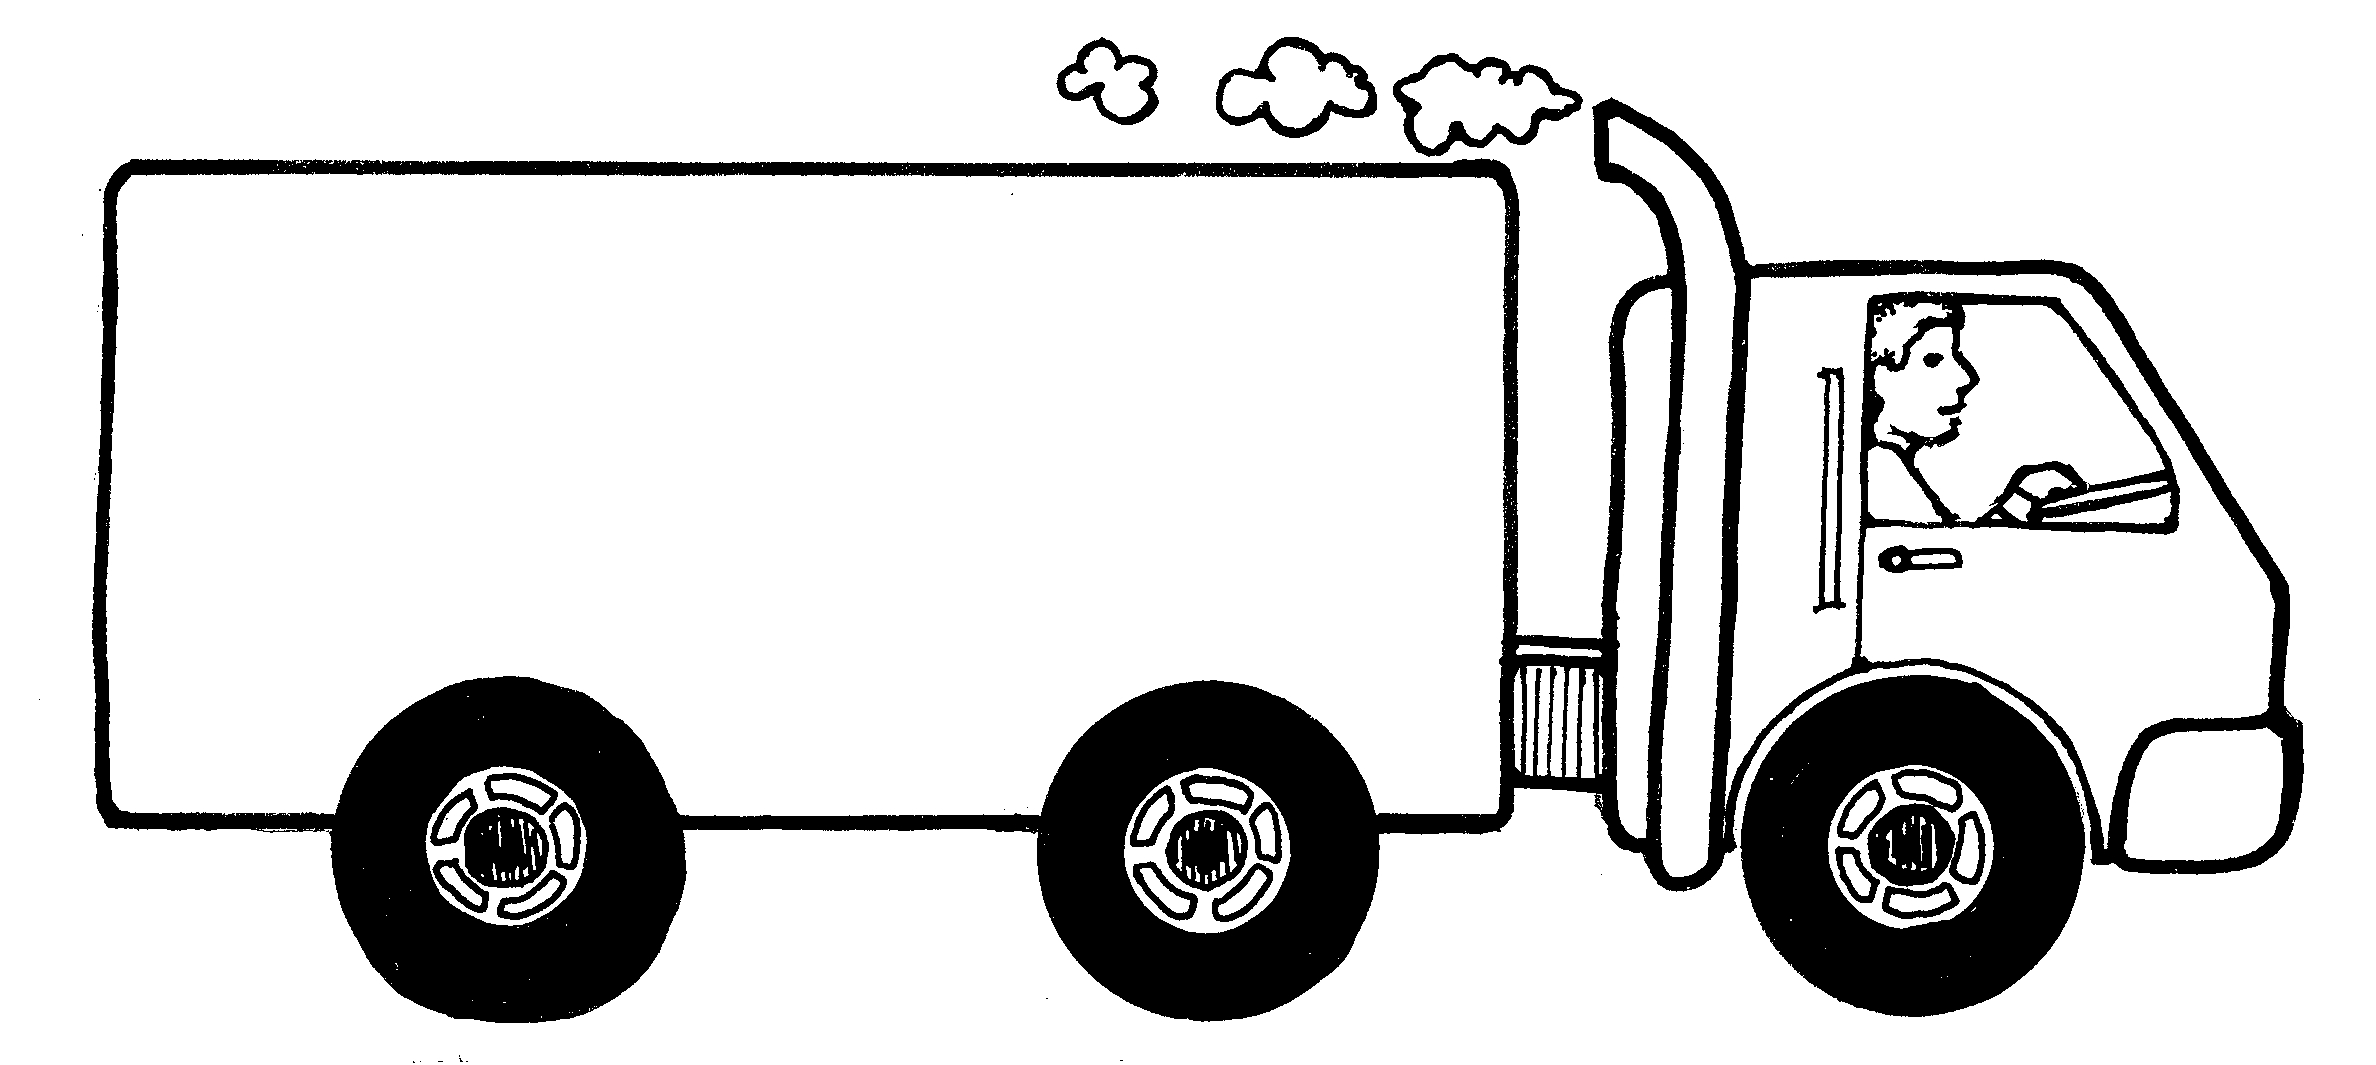 Free moving van clipart black and white image transparent stock Free Picture Of A Moving Truck, Download Free Clip Art, Free Clip ... image transparent stock